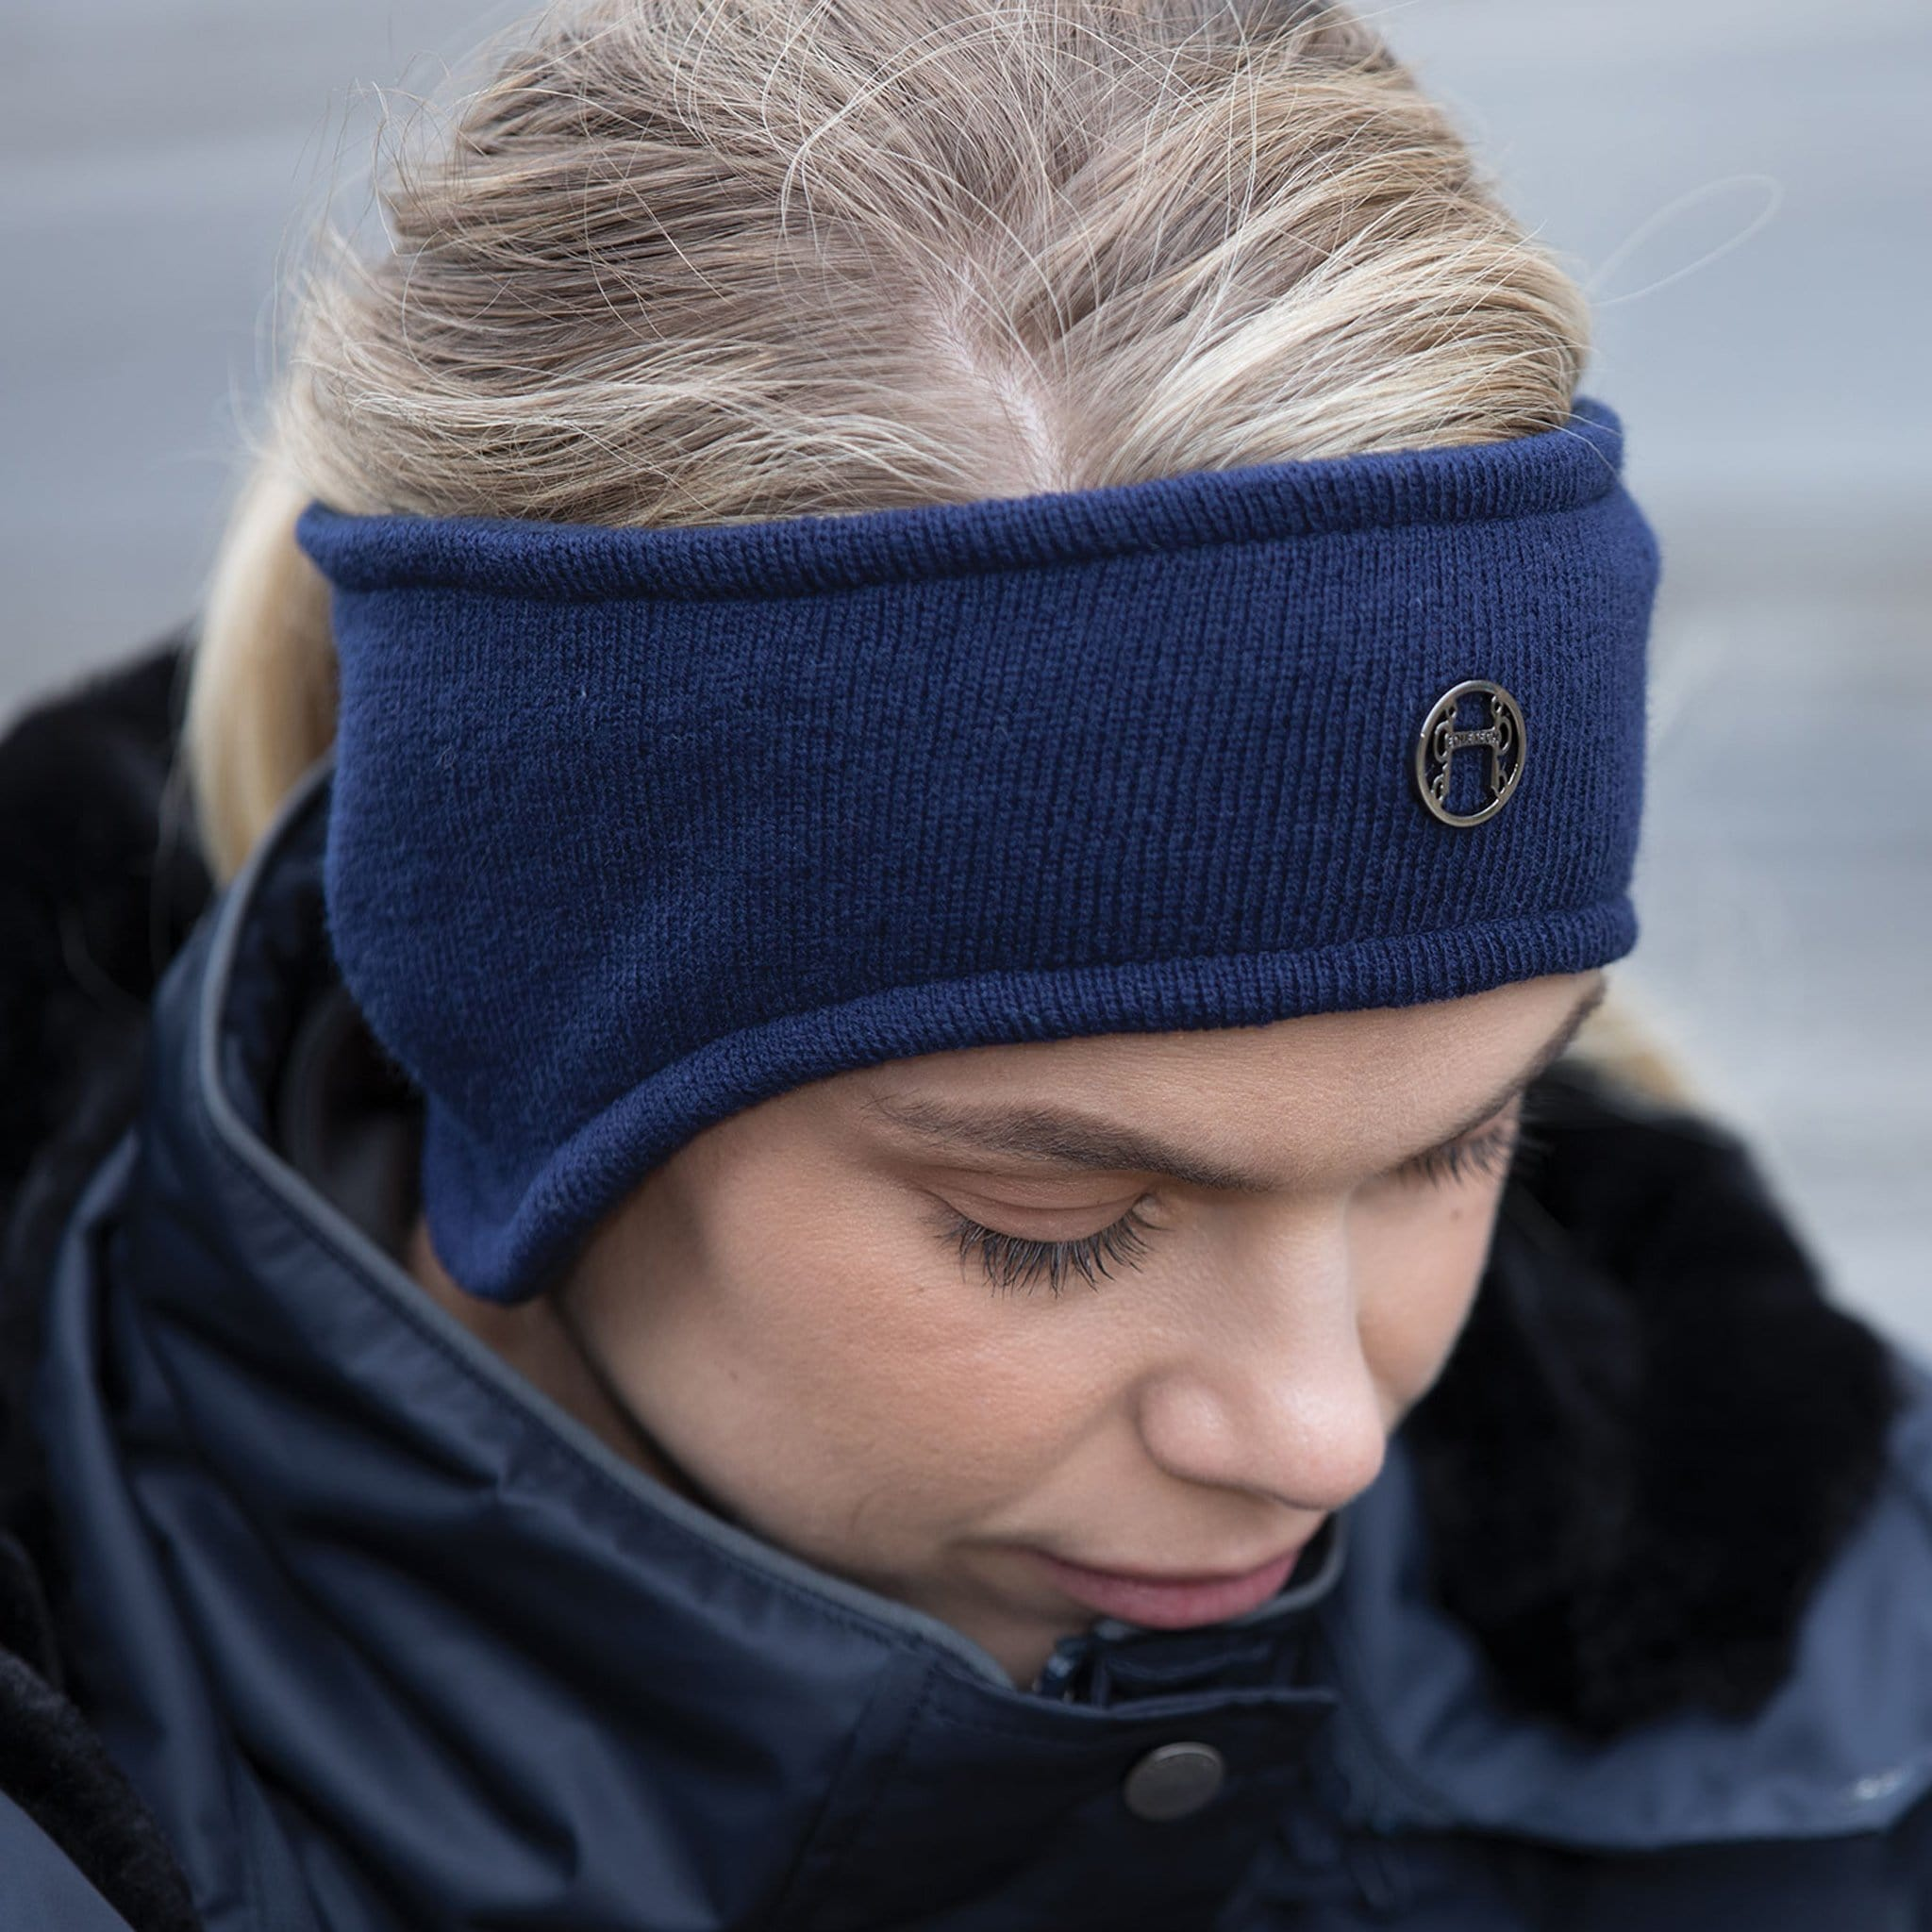 Equetech Kontour Knit Headband Navy On Model KNH-1-NY.